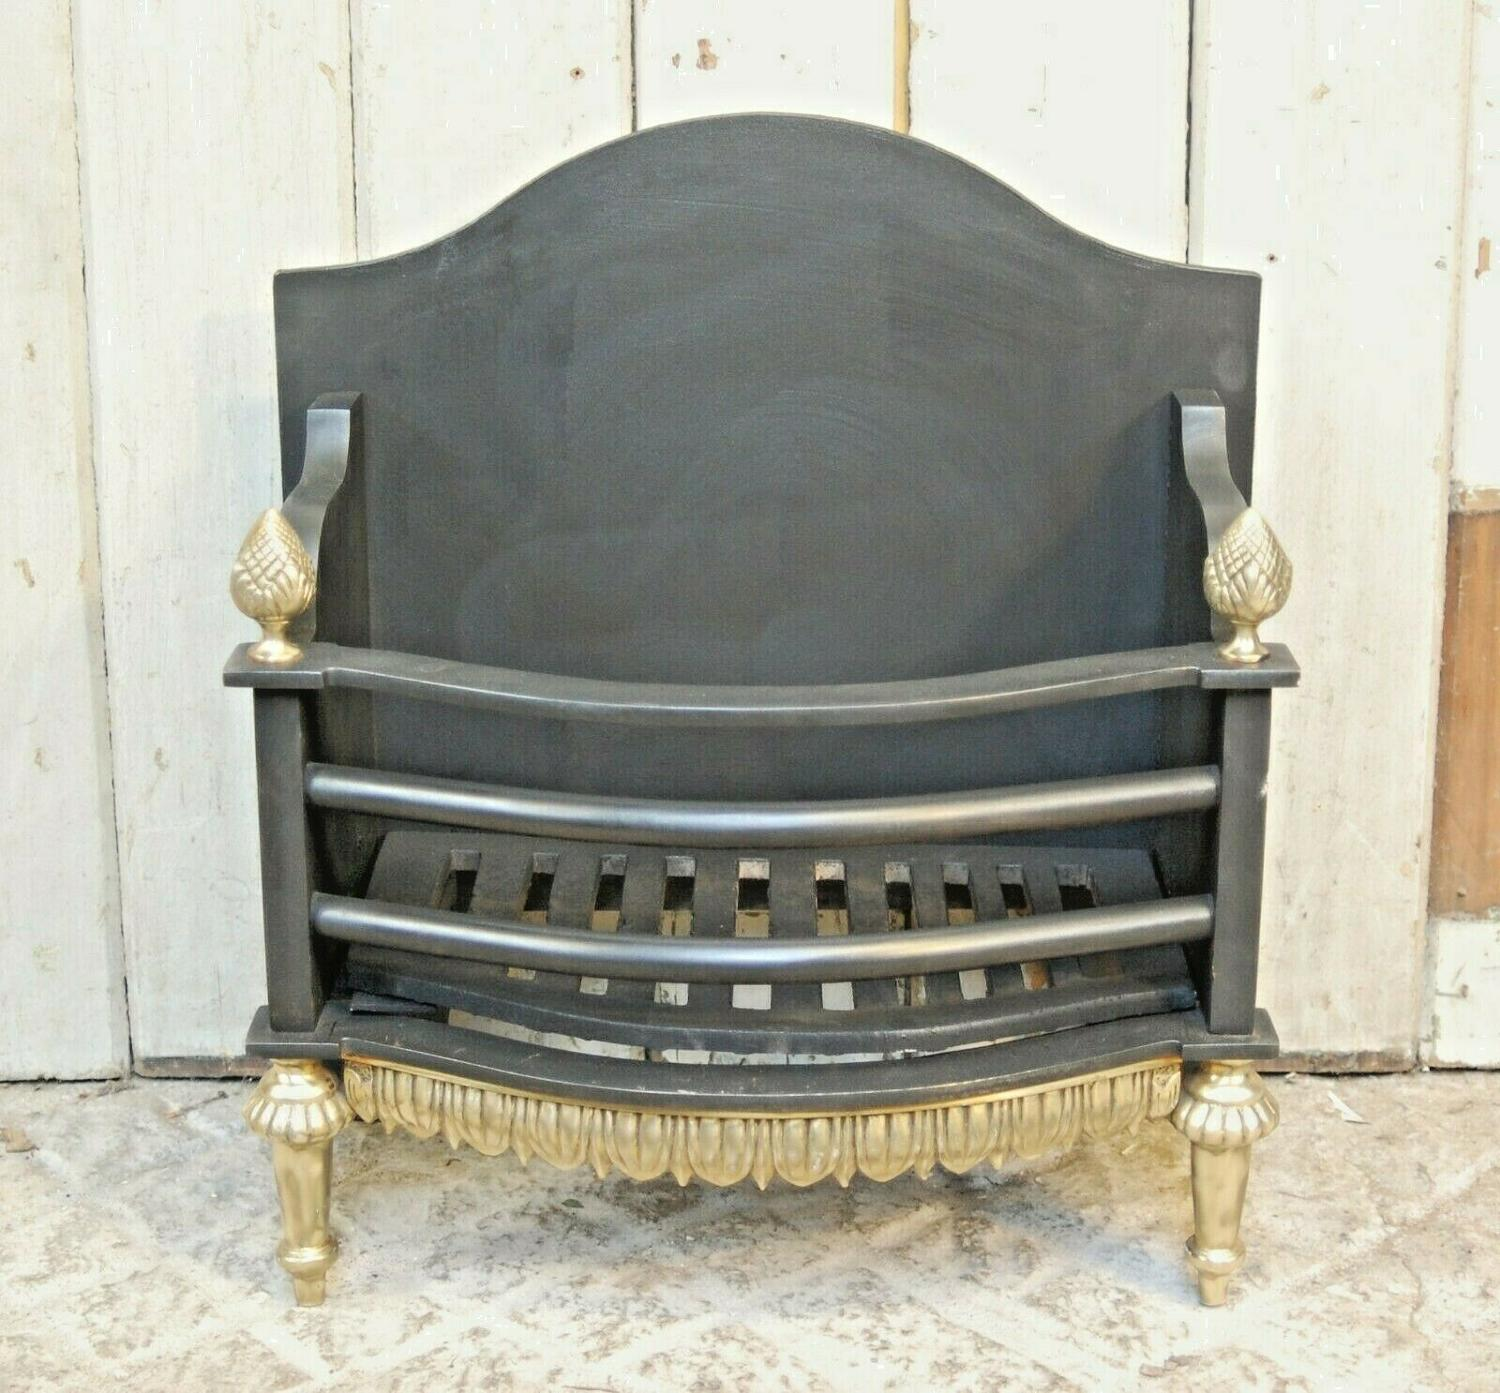 FB0038 RECLAIMED REPRODUCTION CAST IRON AND BRASS FIRE REGISTER BASKET